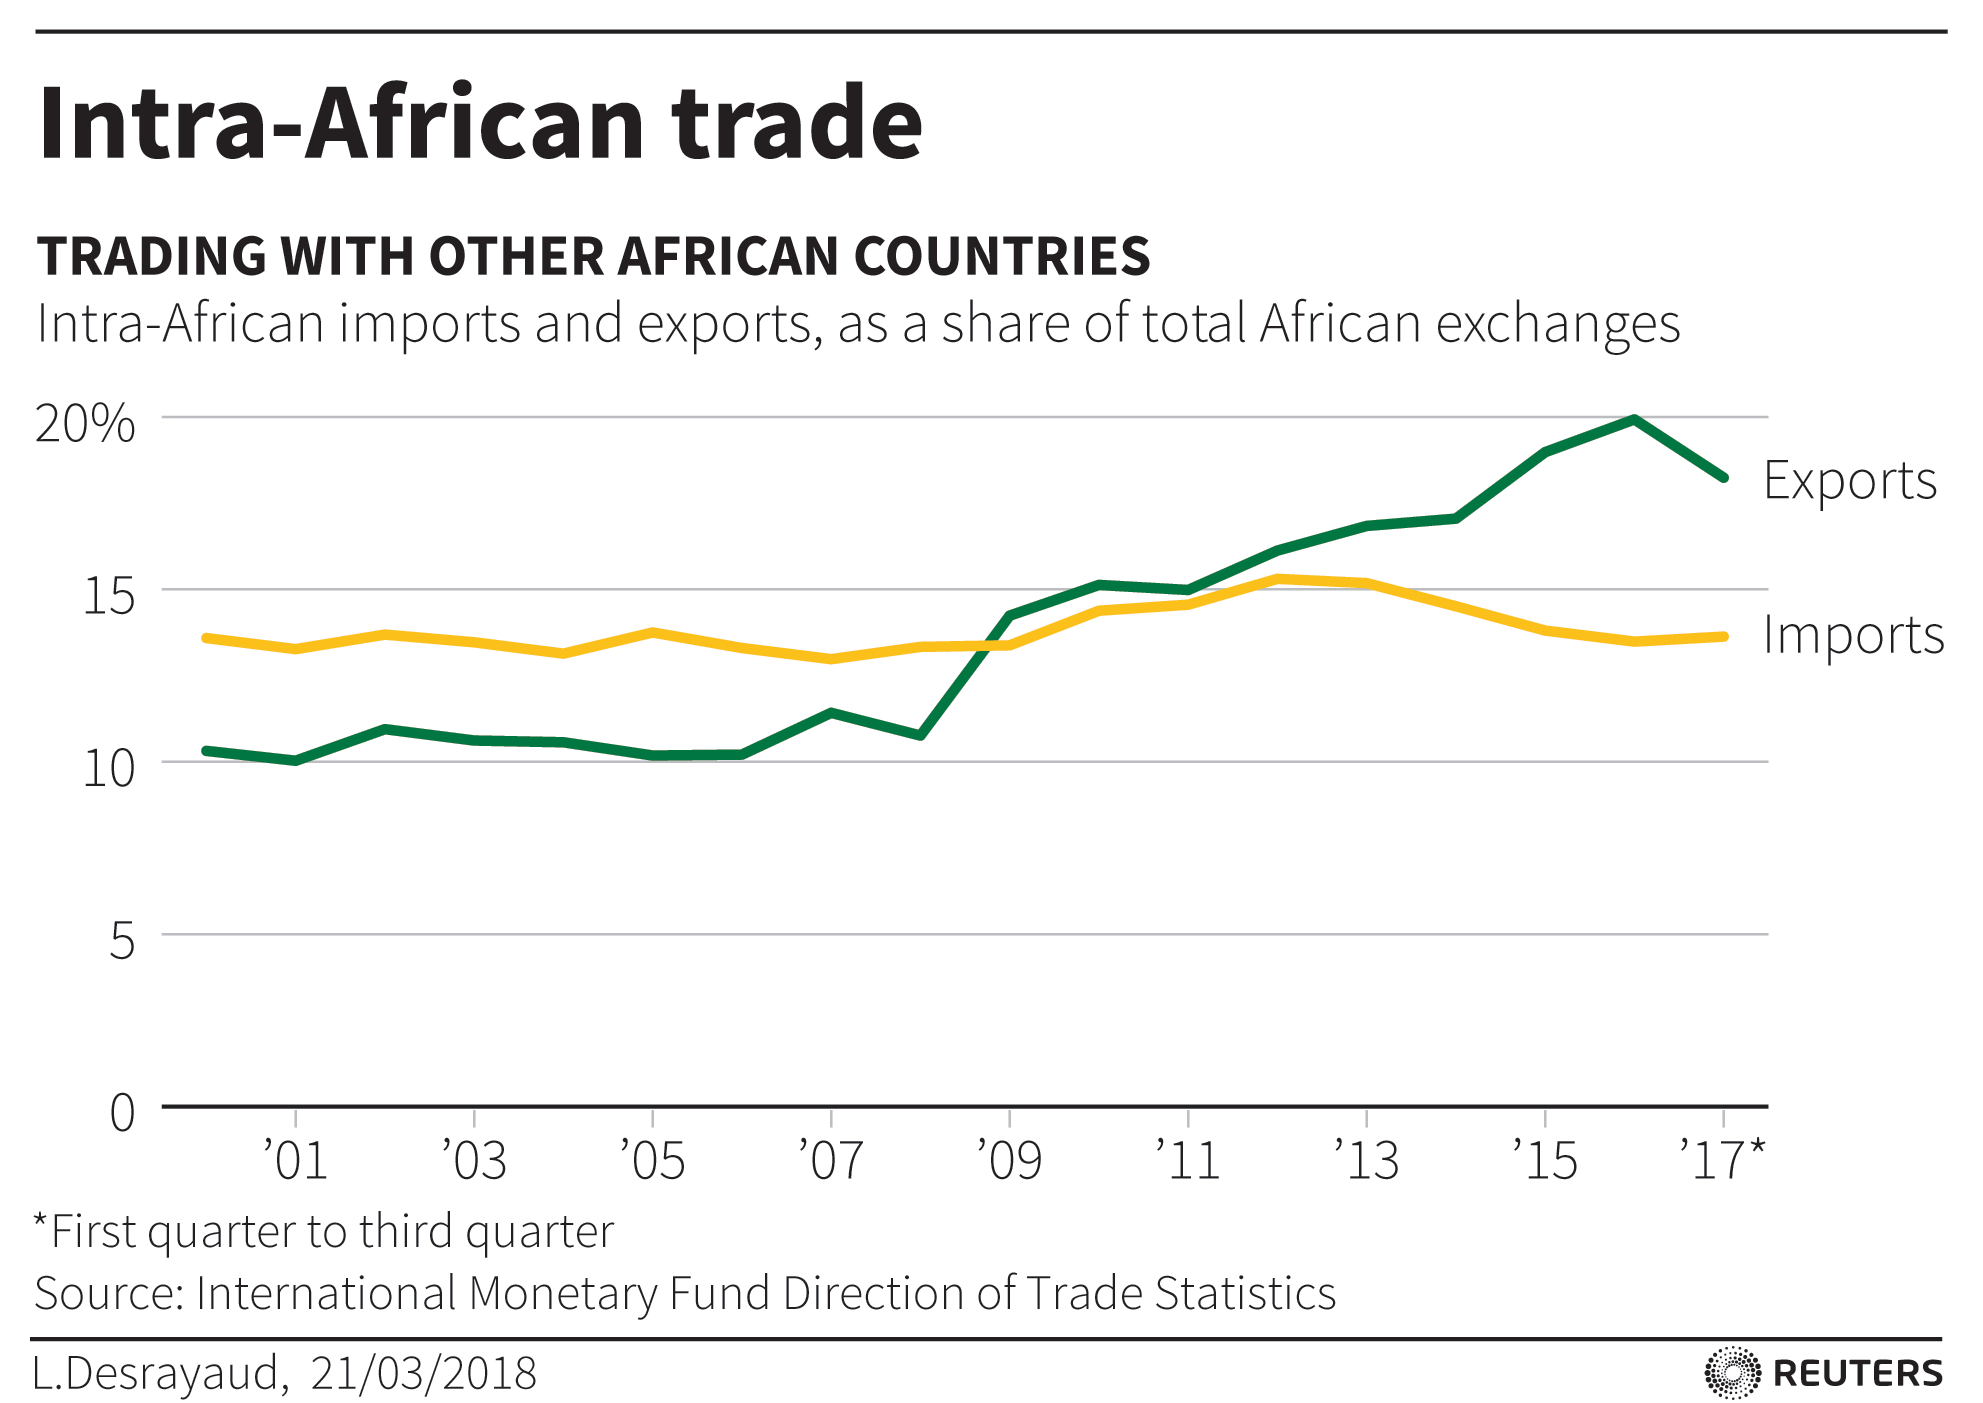 Intra-African trade